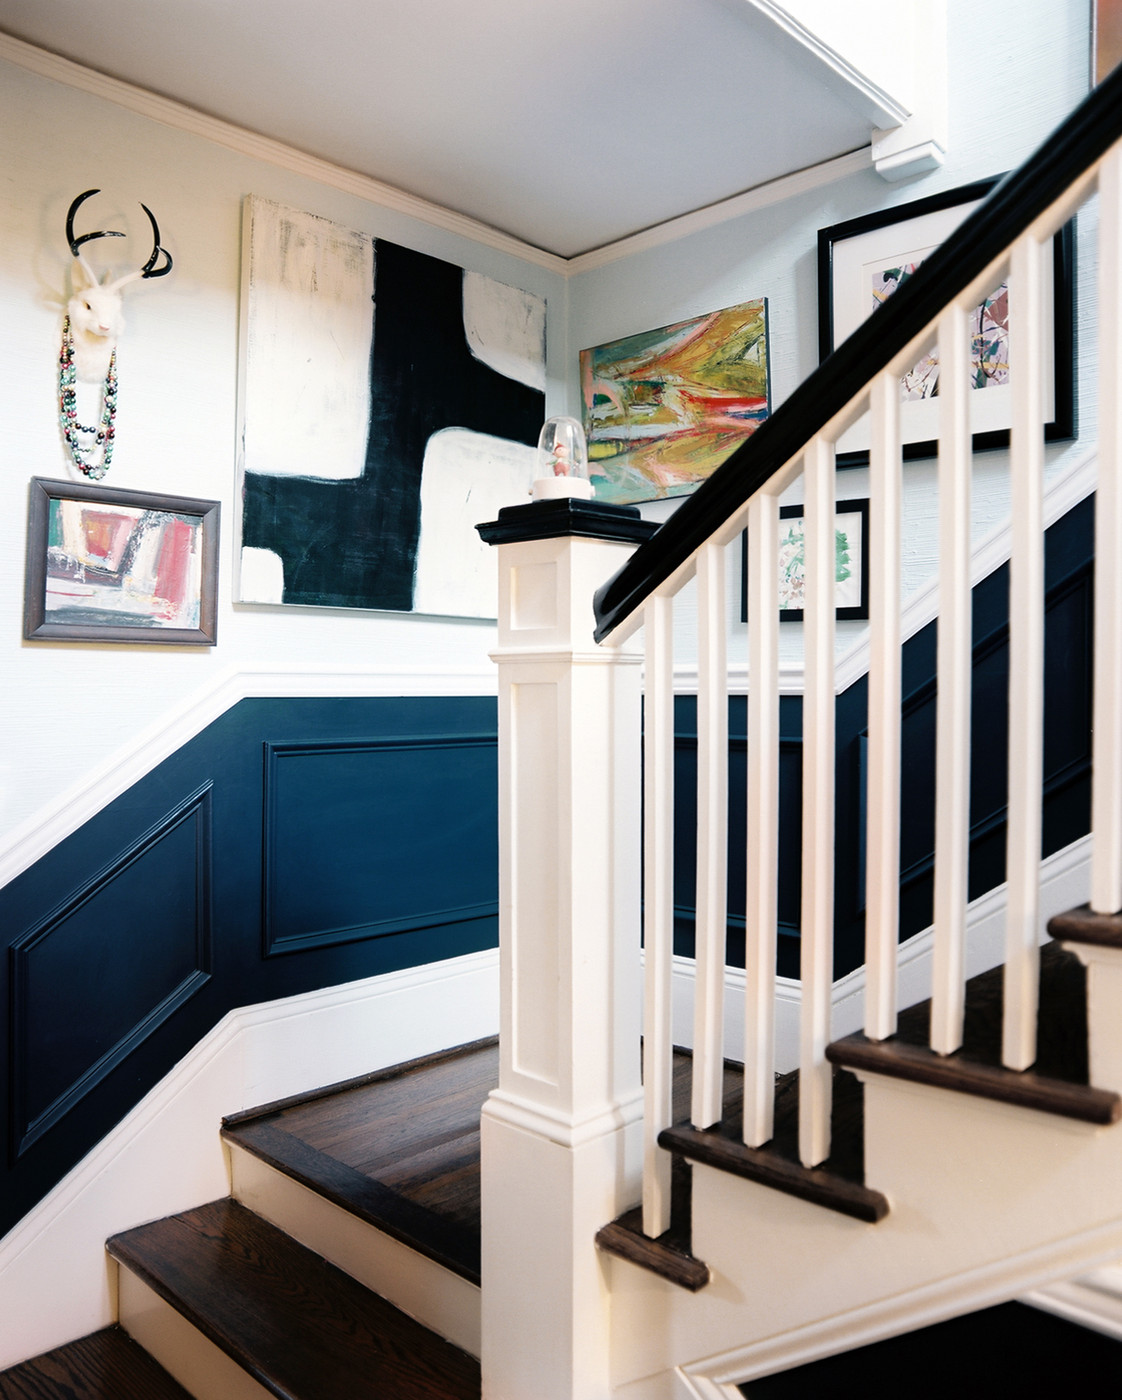 Staircase Design Ideas Remodels Photos: Staircase Railing Photos, Design, Ideas, Remodel, And